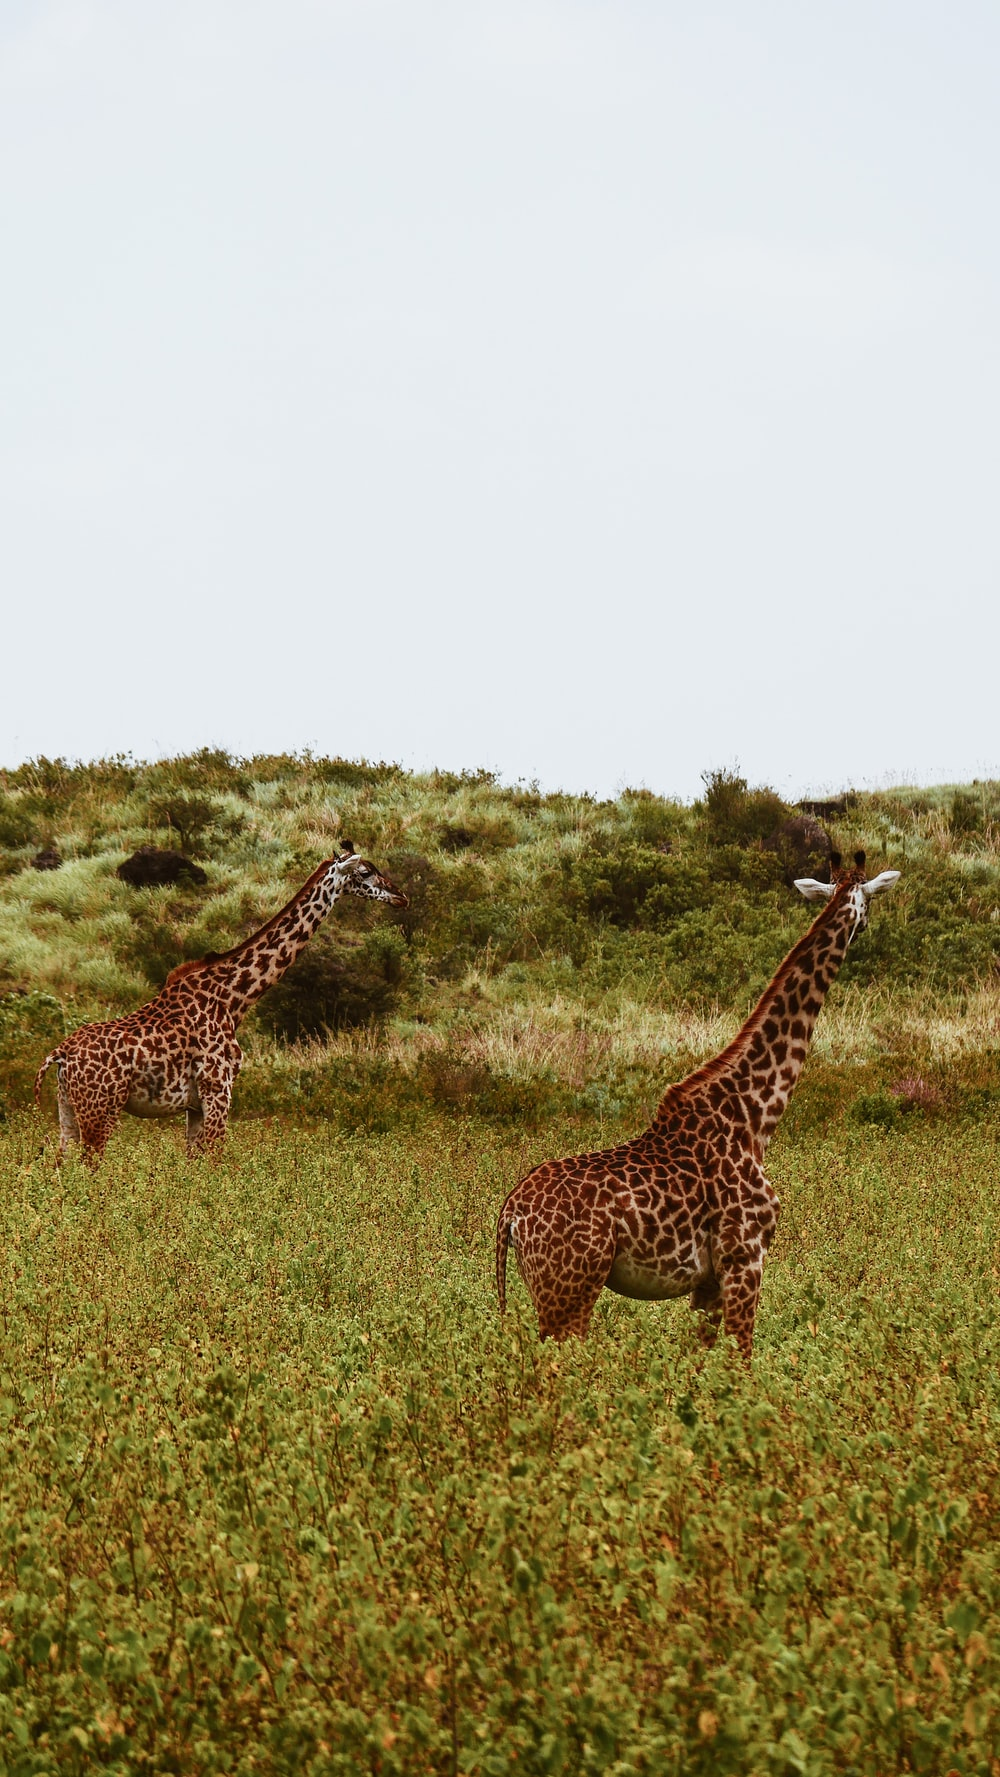 two giraffes on grass